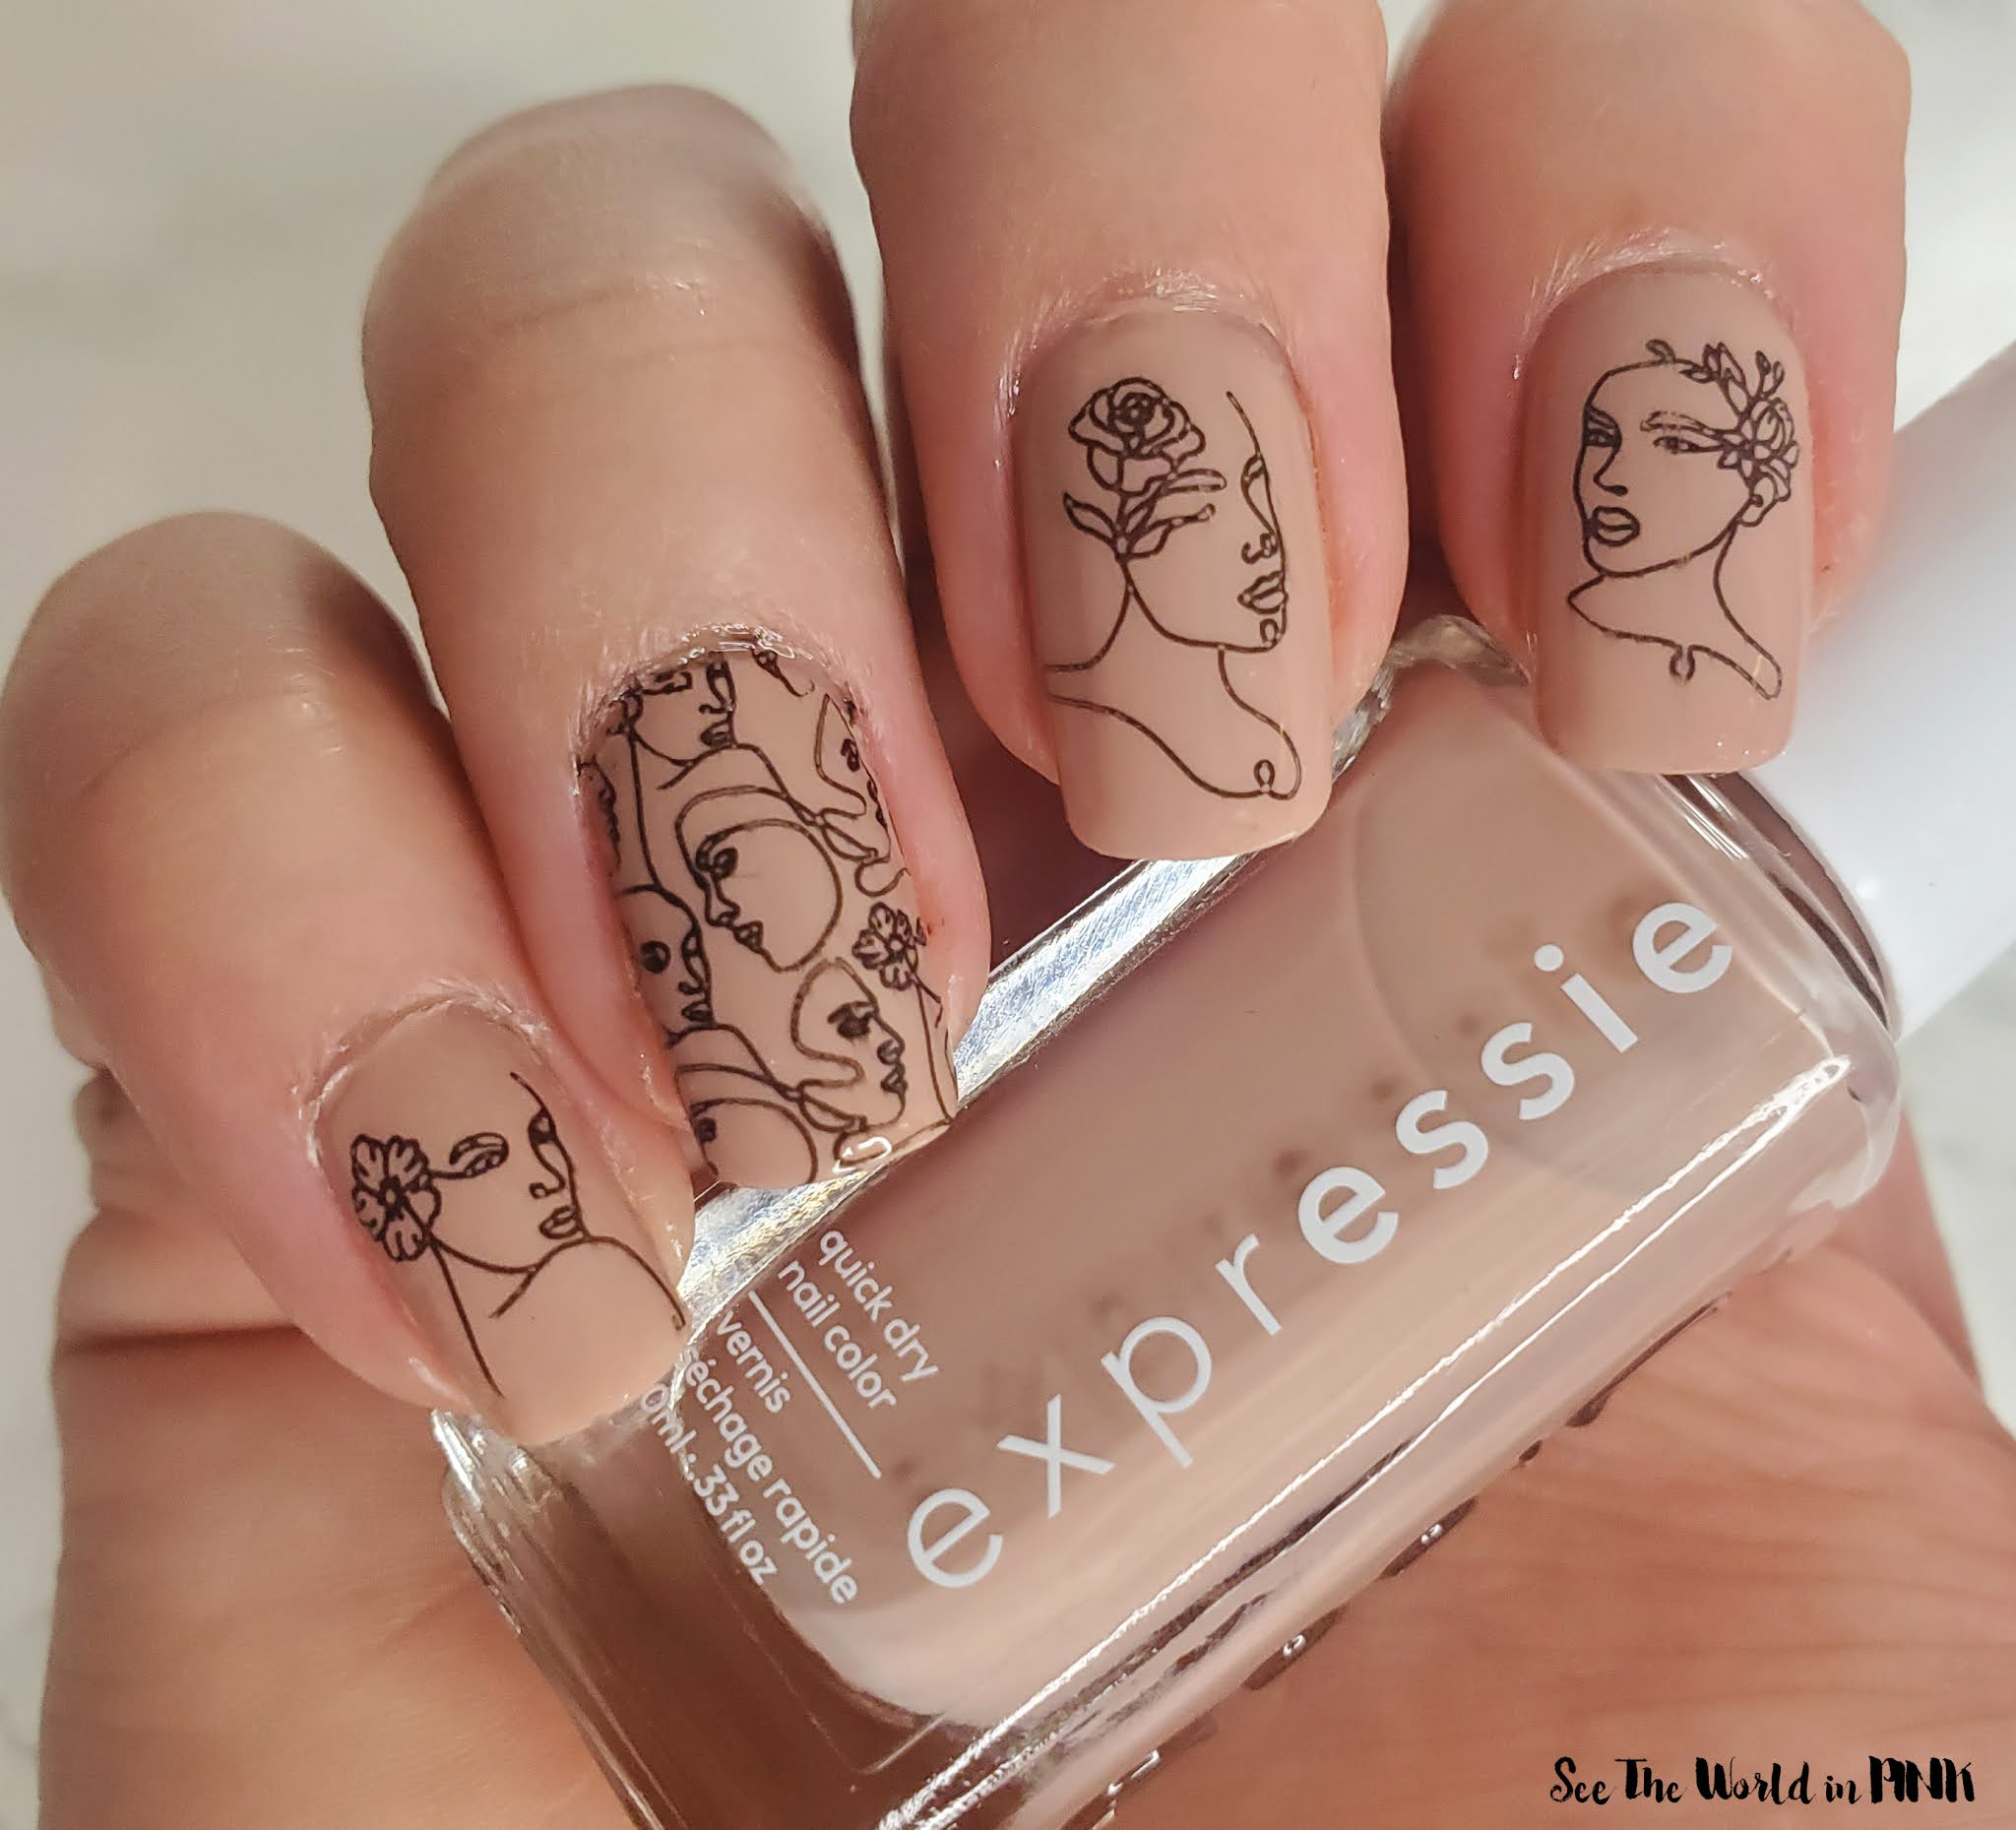 Manicure Monday - Woman Line Art Nails